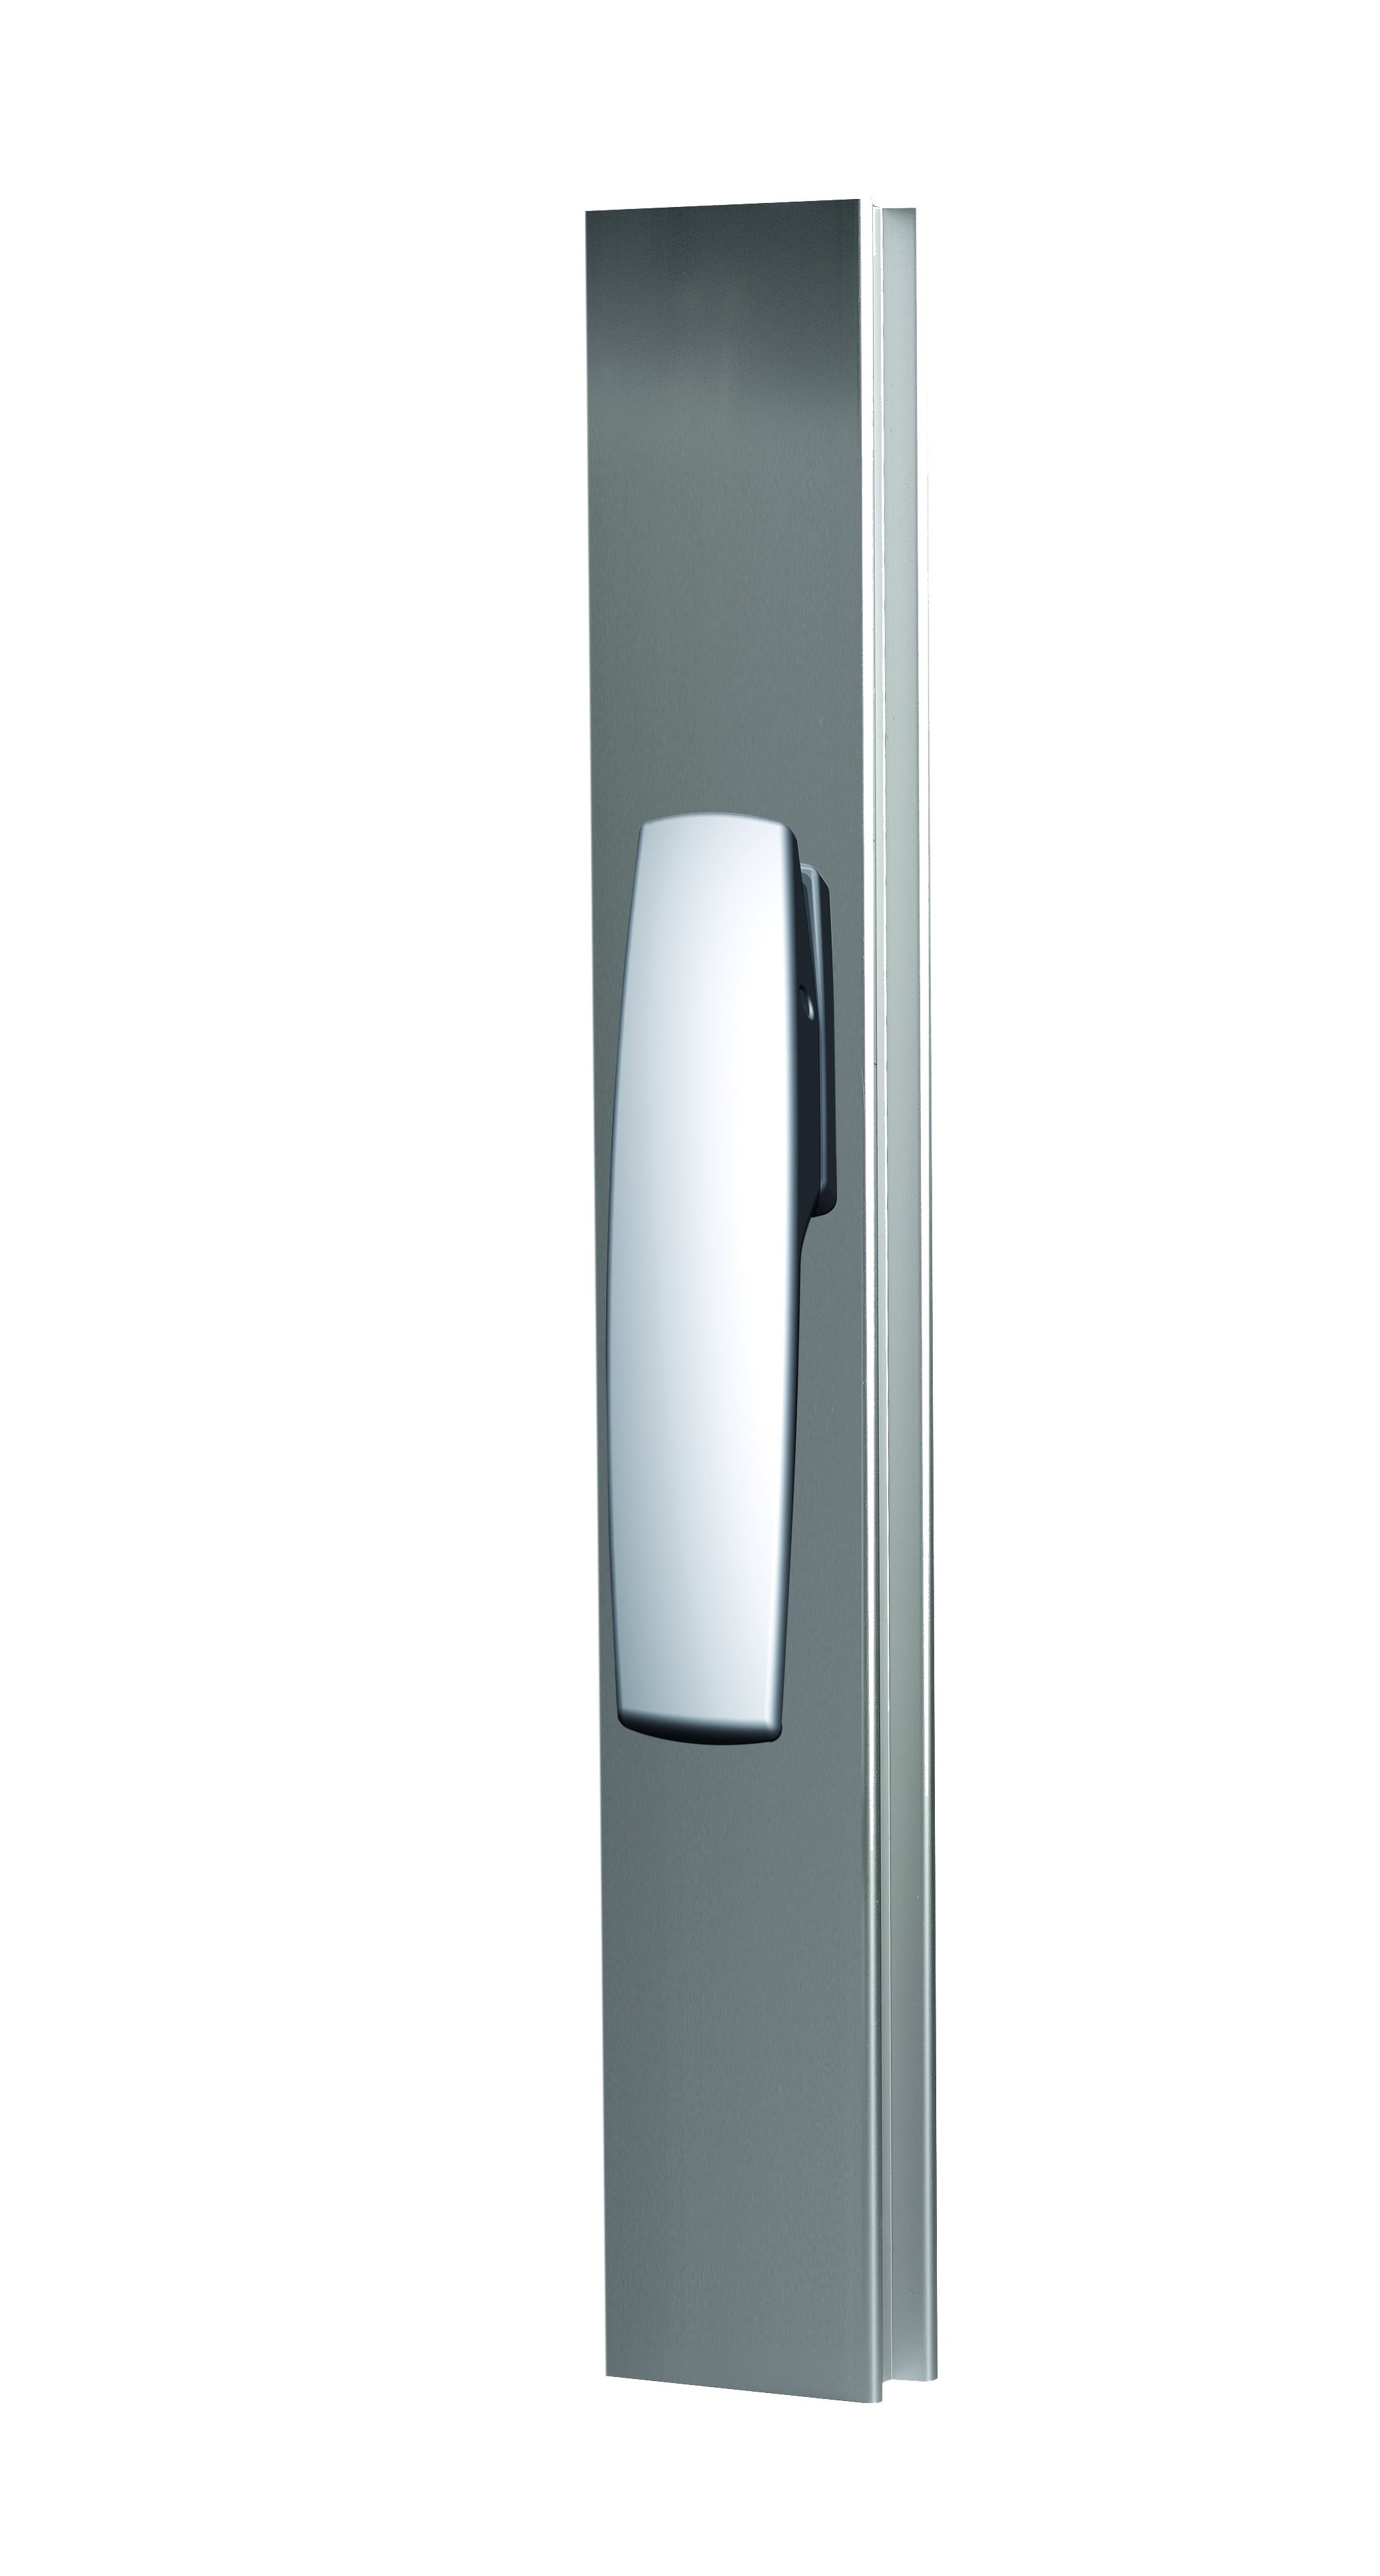 Bifold door handle c